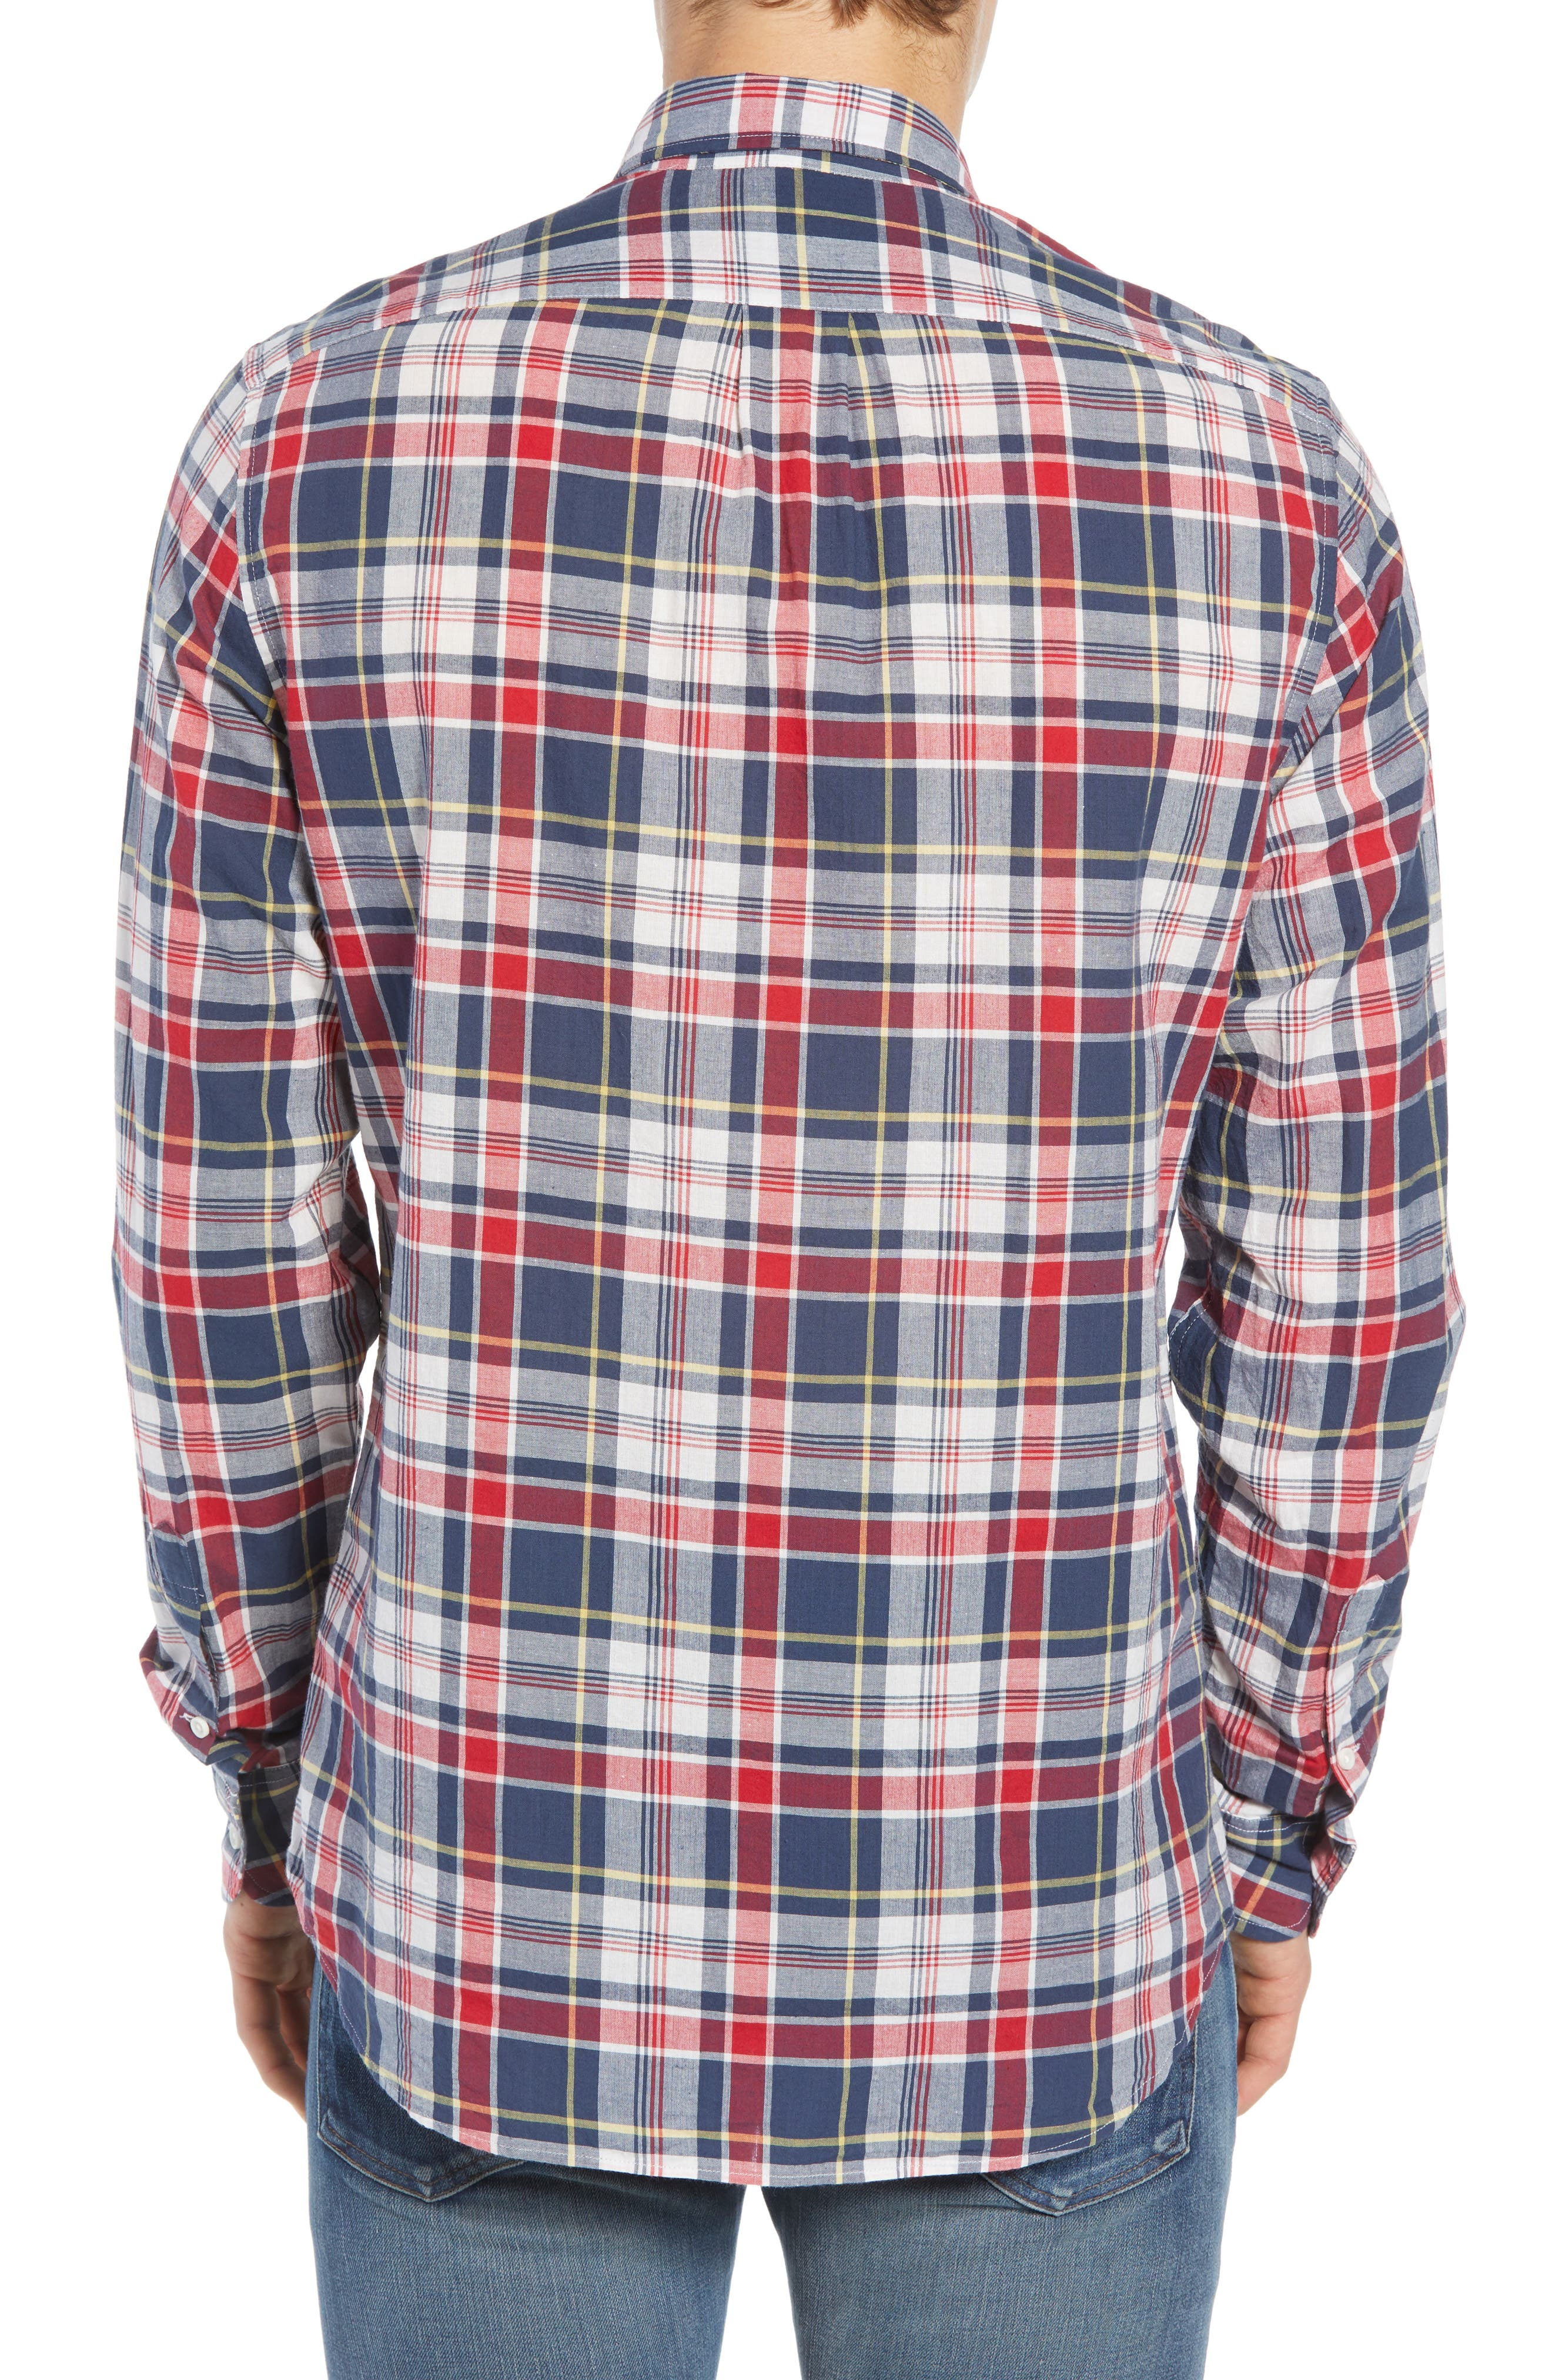 Regular Fit Madras Plaid Sport Shirt,                             Alternate thumbnail 3, color,                             Navy Ink